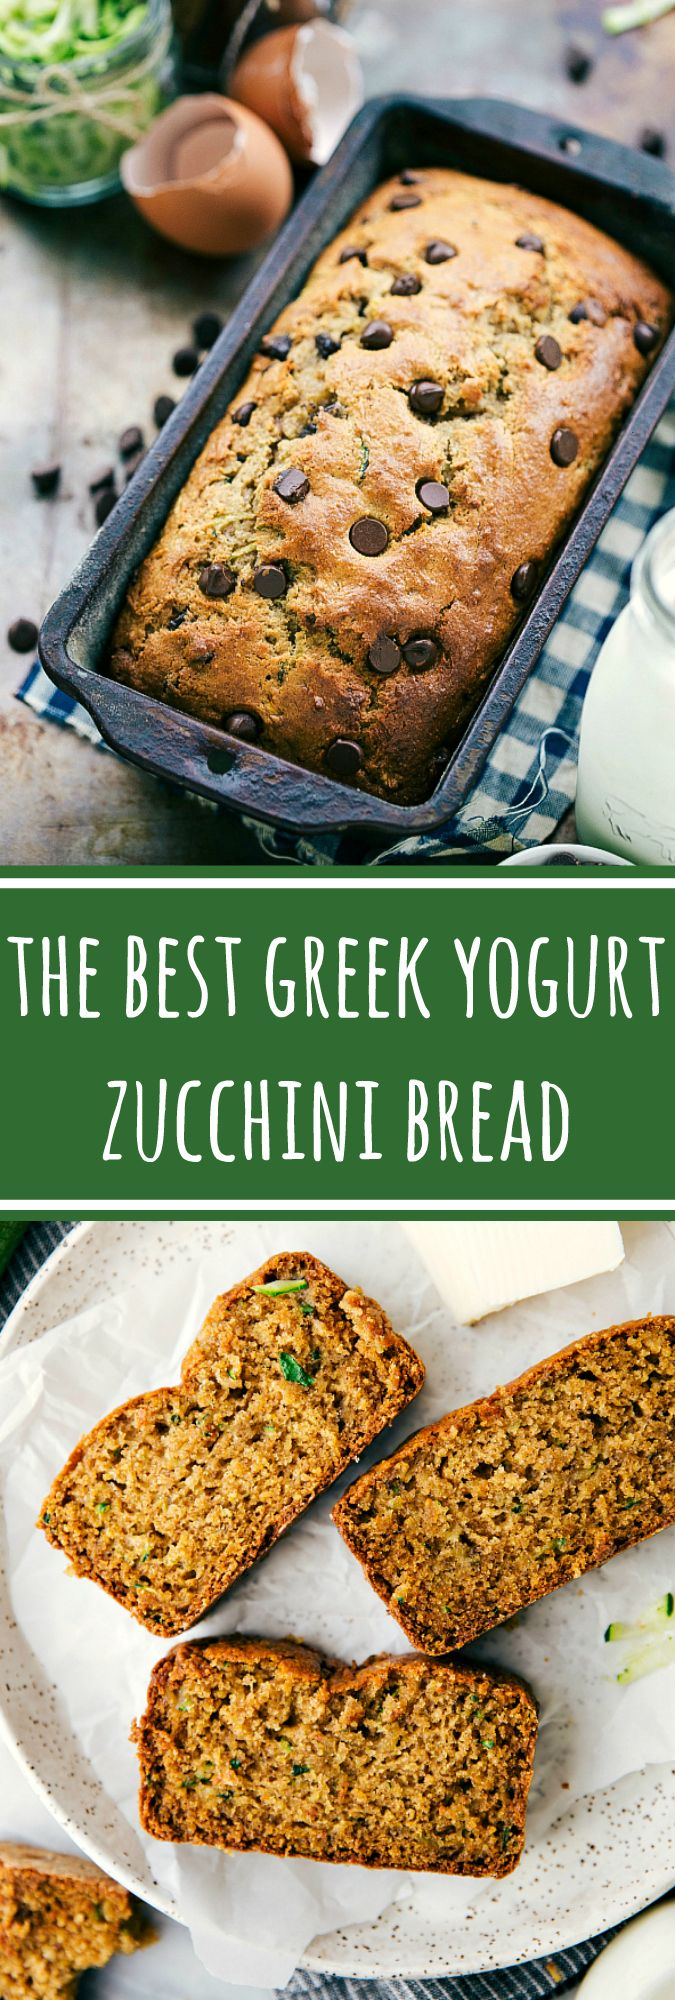 With or without chocolate chips, this Greek yogurt healthy zucchini bread is the BEST! Rave reviews from many!